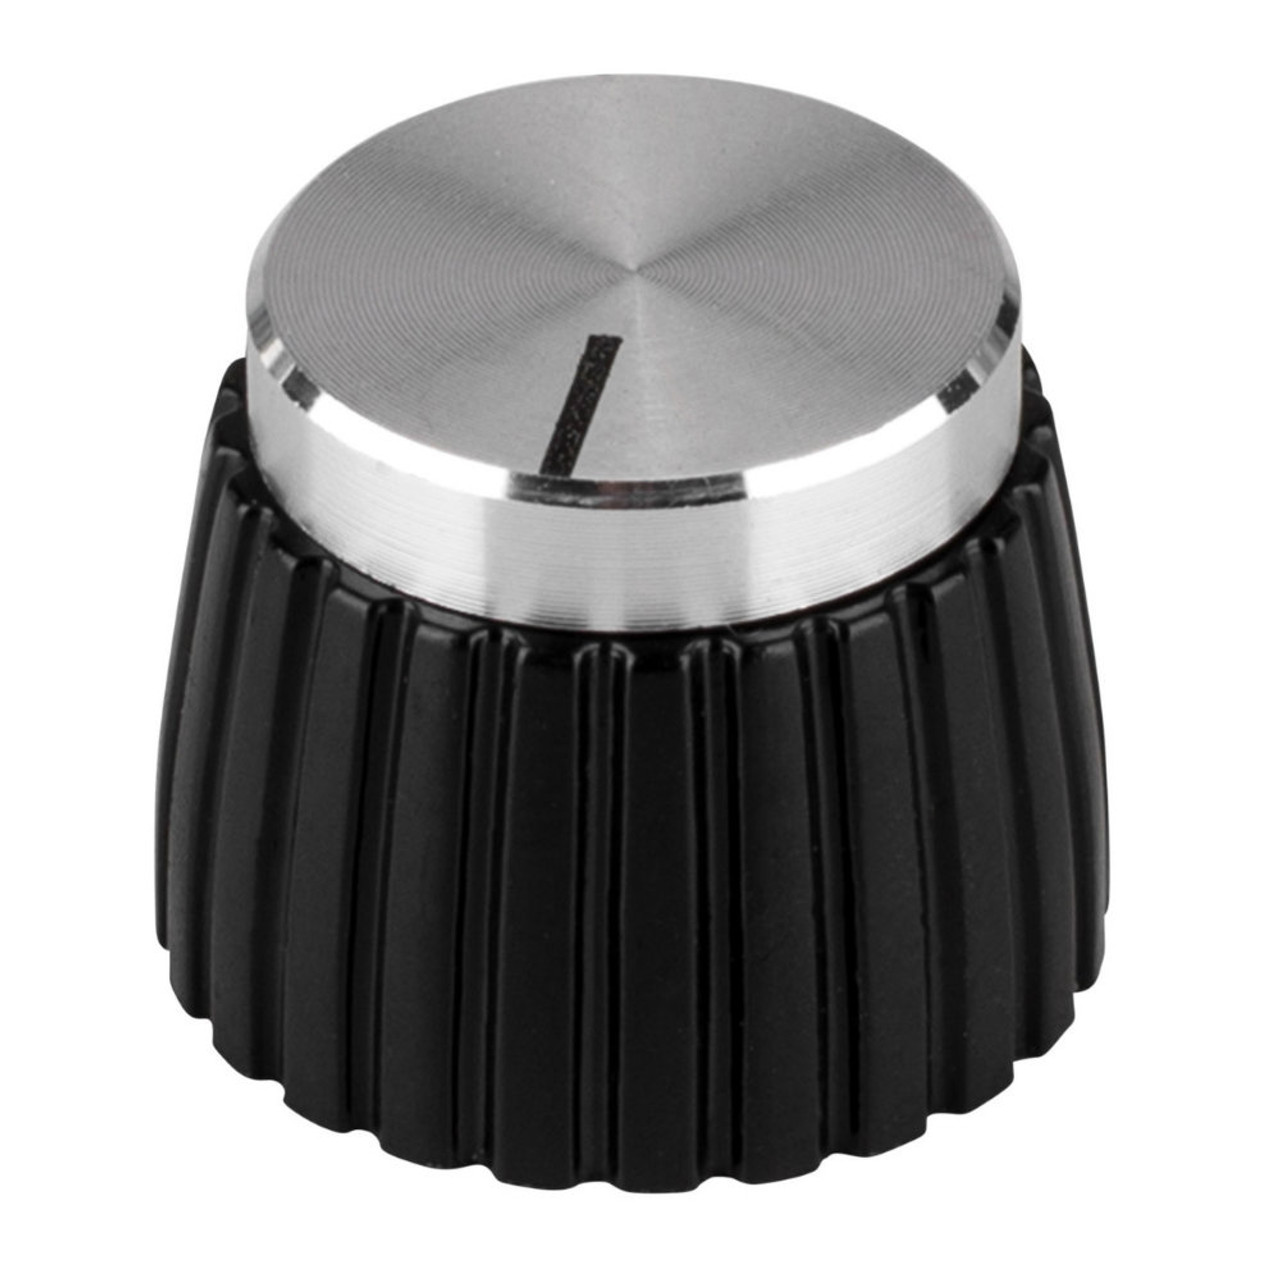 Marshall Style Chrome Top Knob